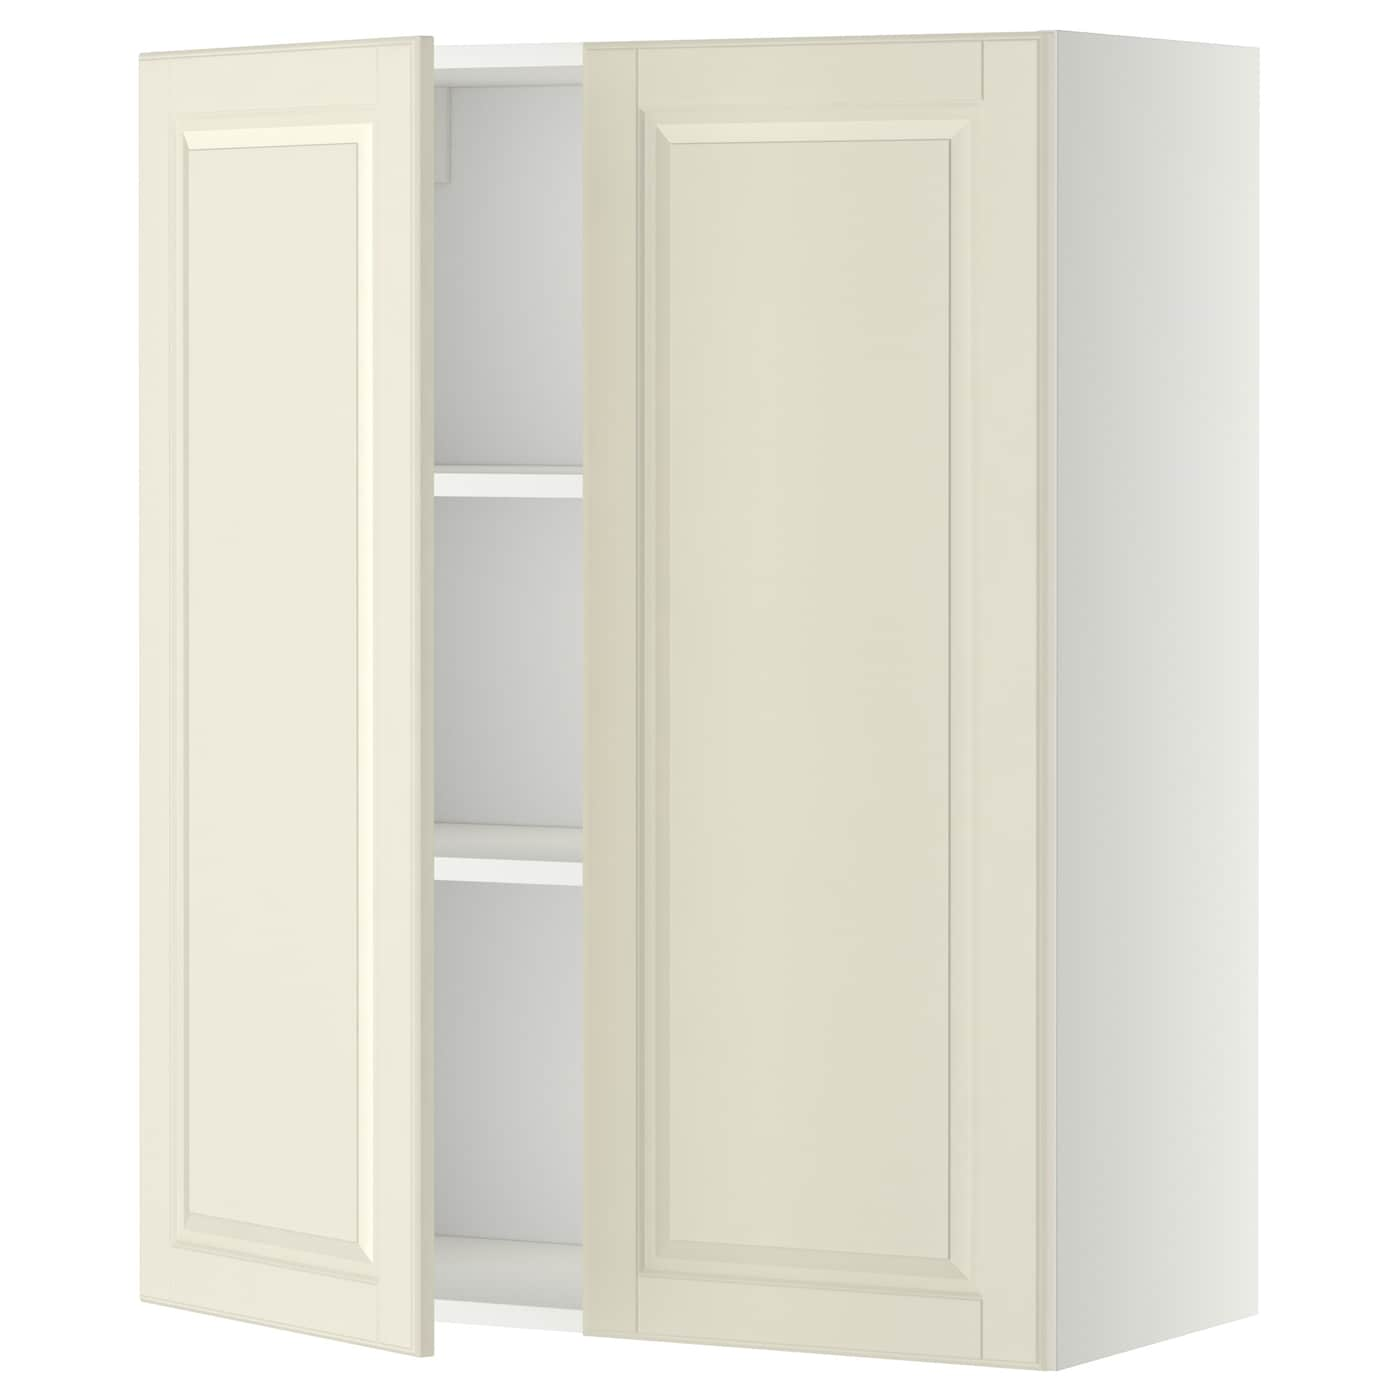 ikea metod wall cabinet with shelves2 doors sturdy frame 18 mm thick